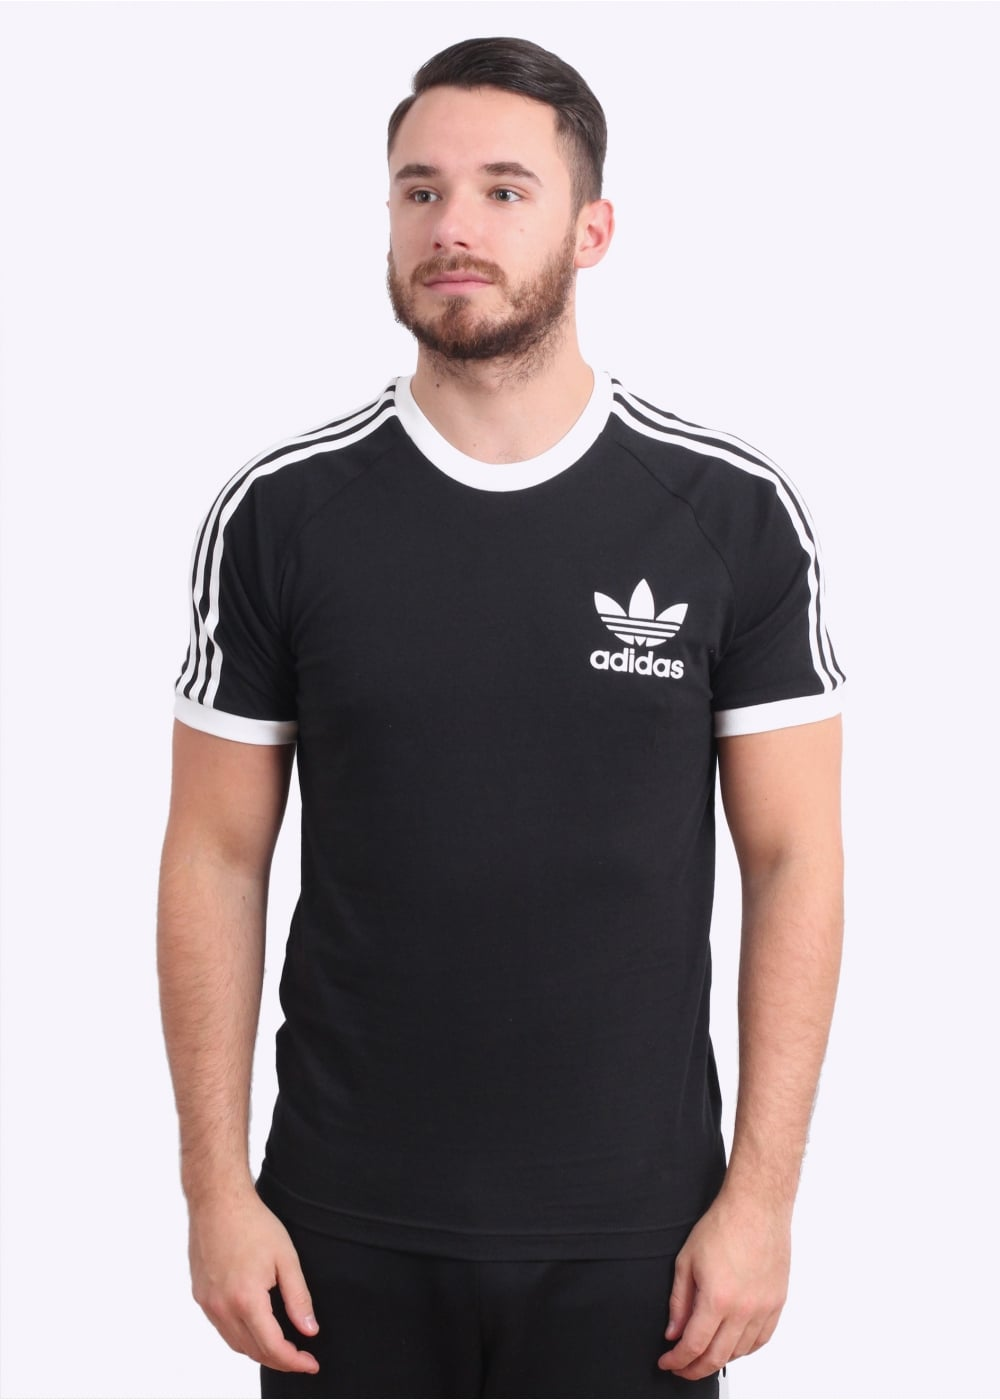 adidas originals apparel california tee black triads. Black Bedroom Furniture Sets. Home Design Ideas